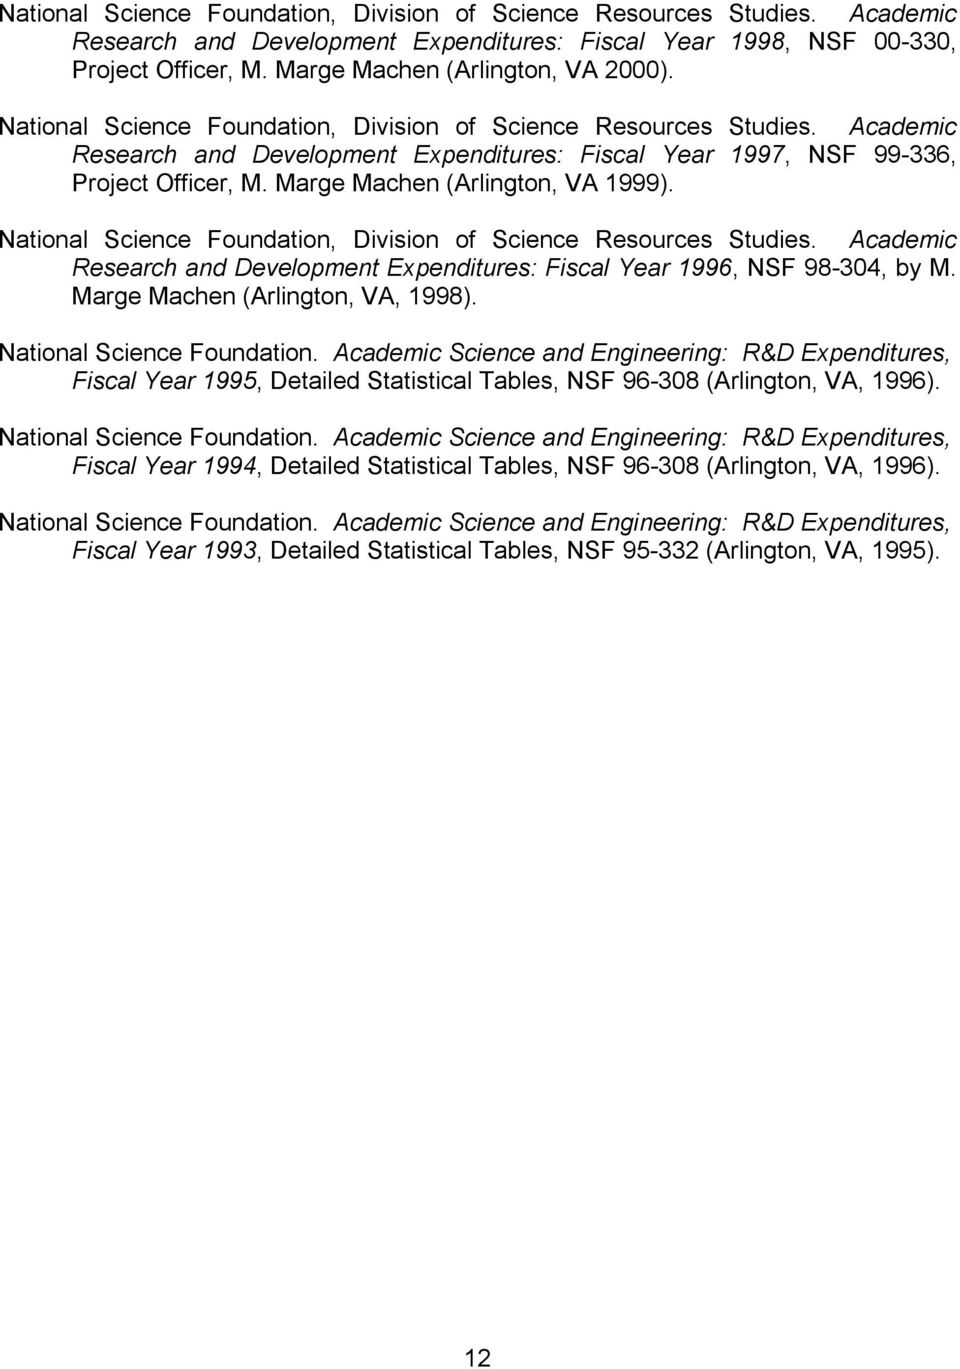 National Science Foundation, Division of Science Resources Studies. Academic Research and Development Expenditures: Fiscal Year 1996, NSF 98-304, by M. Marge Machen (Arlington, VA, 1998).